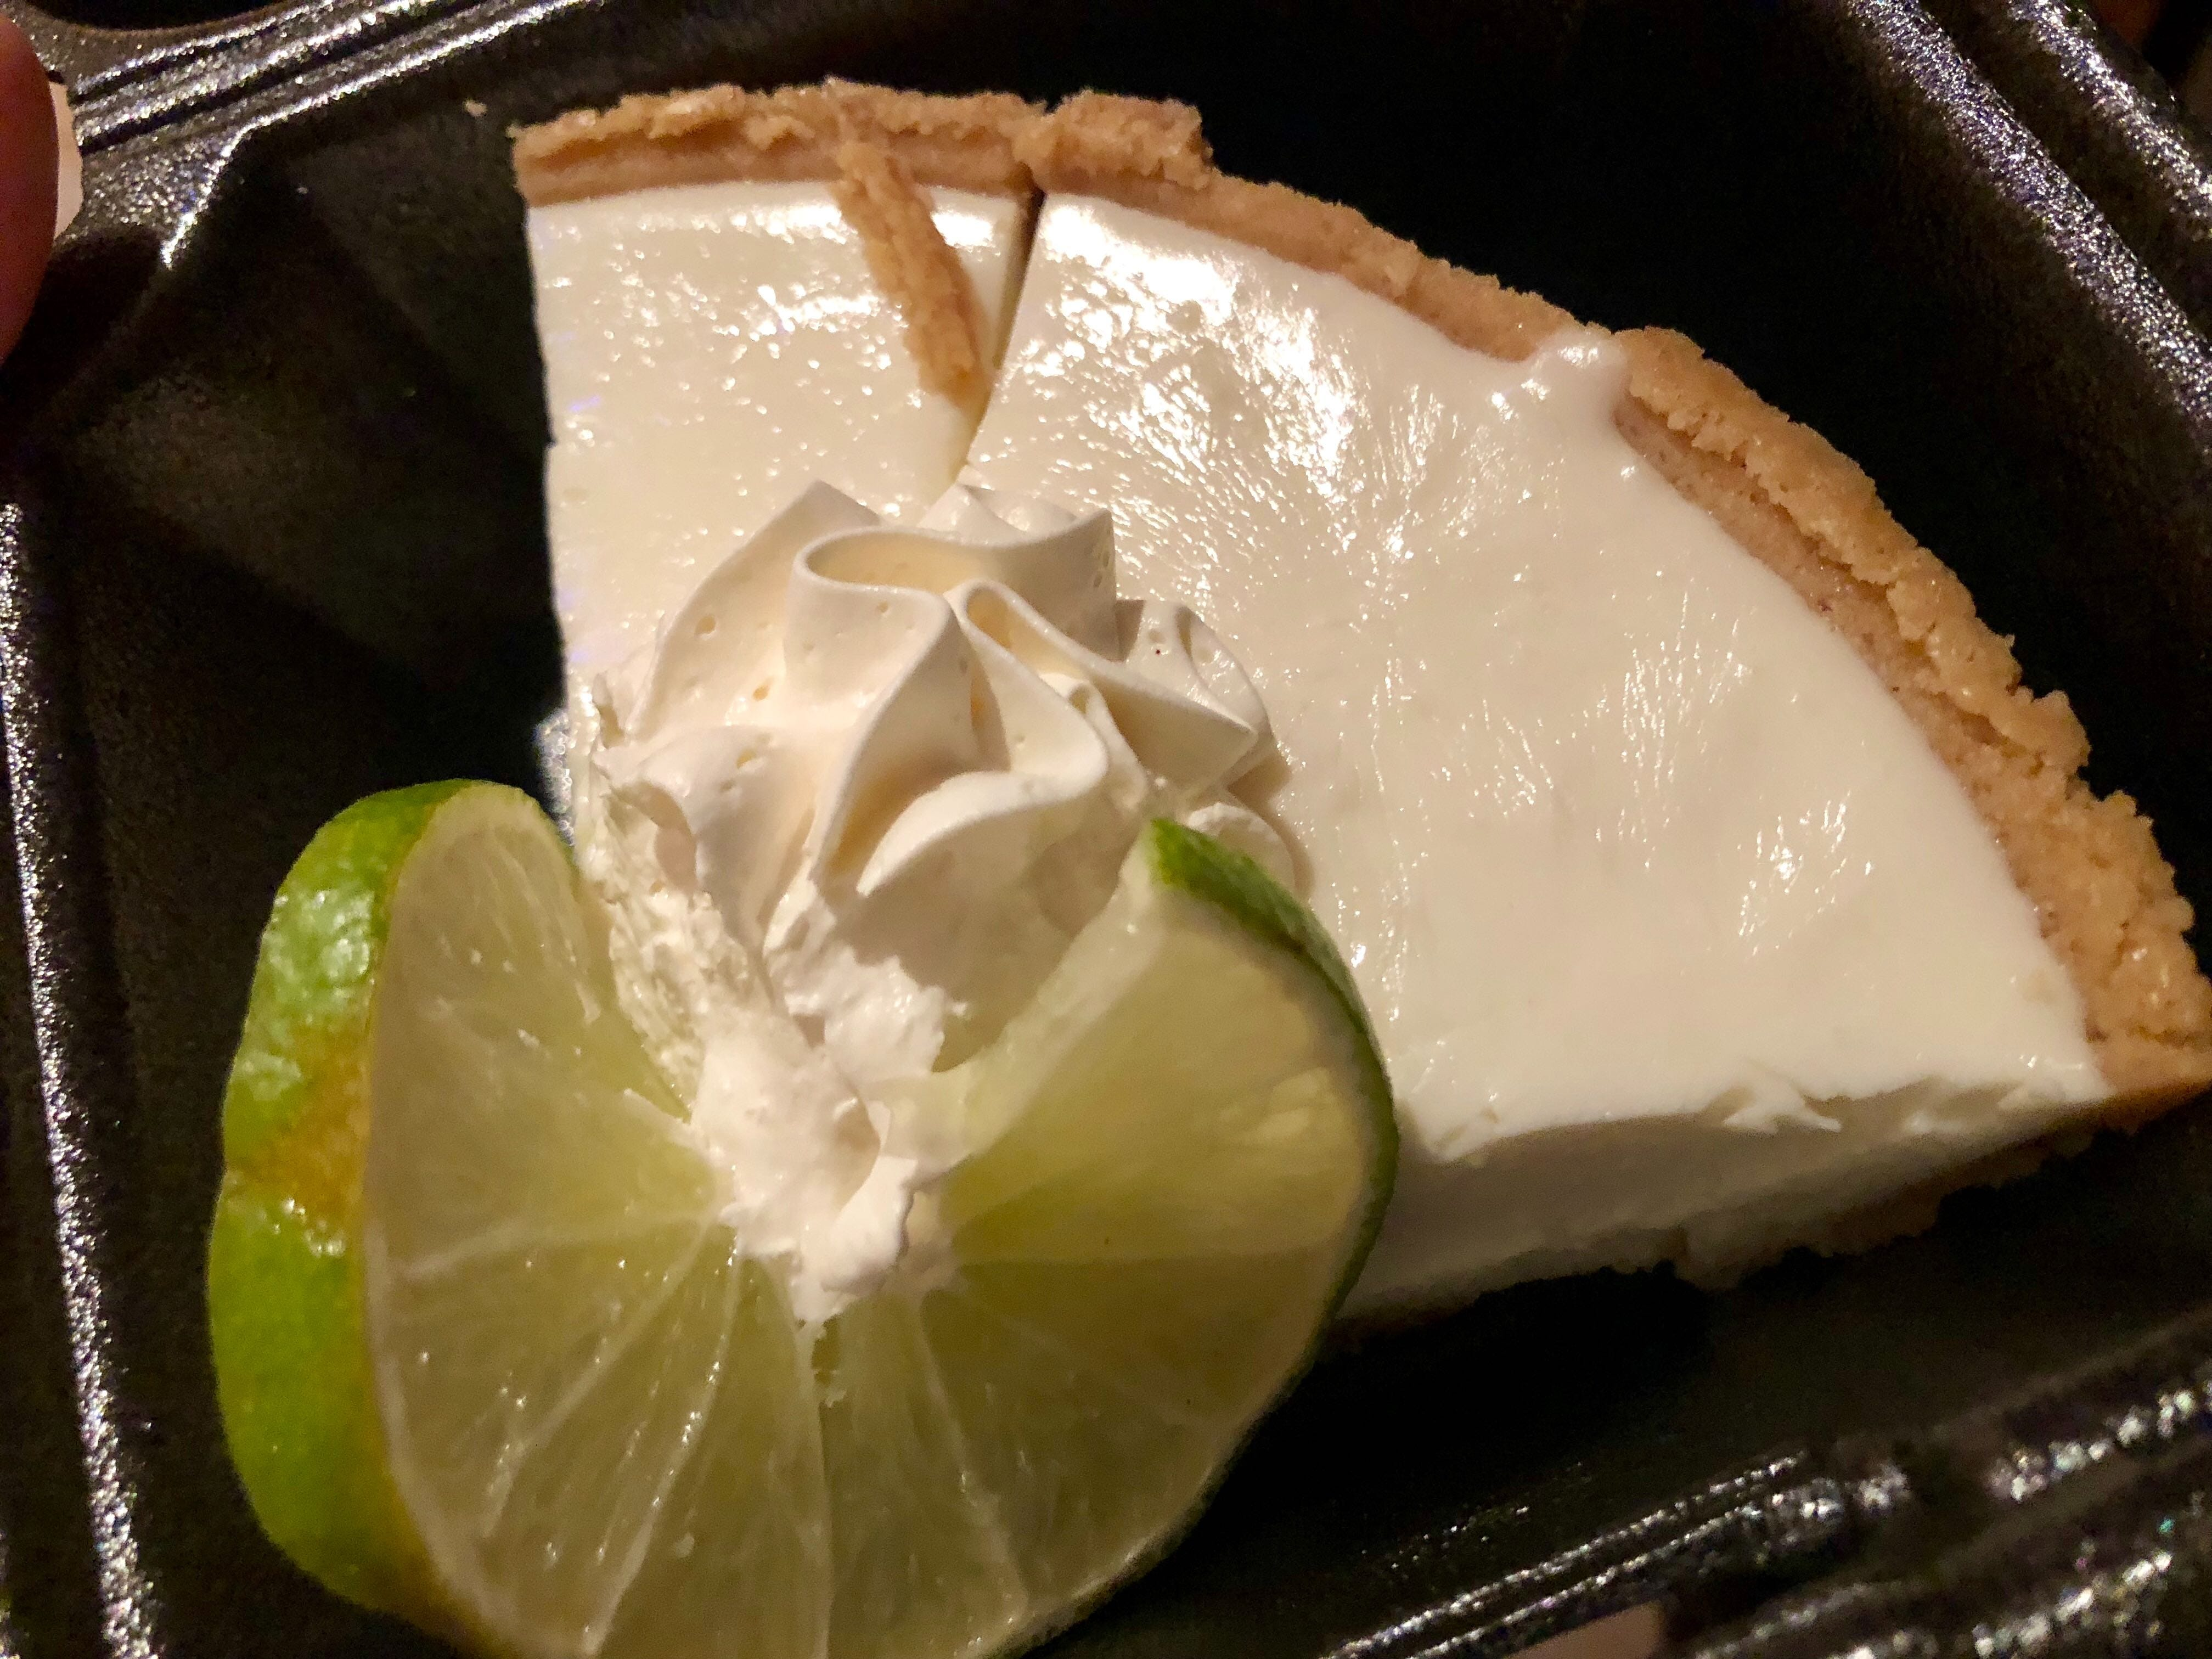 A slice of house-made Key lime pie from Bone Hook Brewing Co. in North Naples.